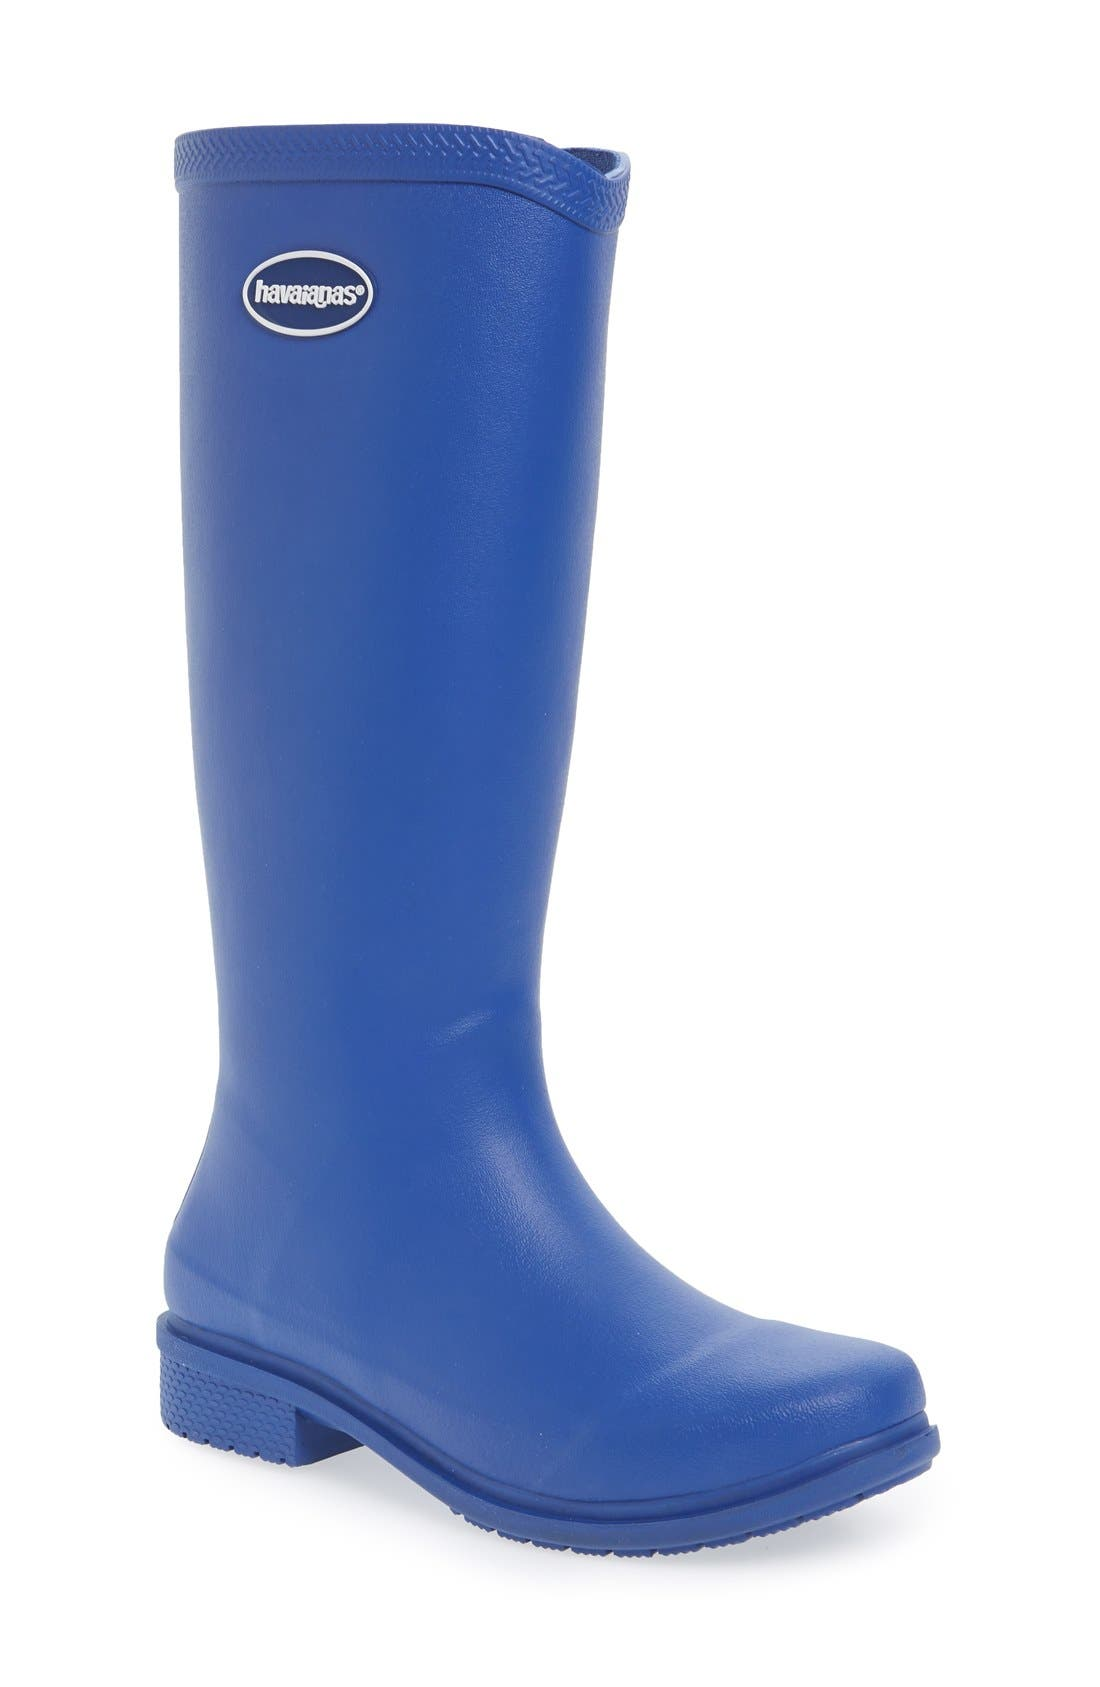 Main Image - Havaianas 'Galochas Hi Matte' Waterproof Rain Boot (Women) (Wide Calf)